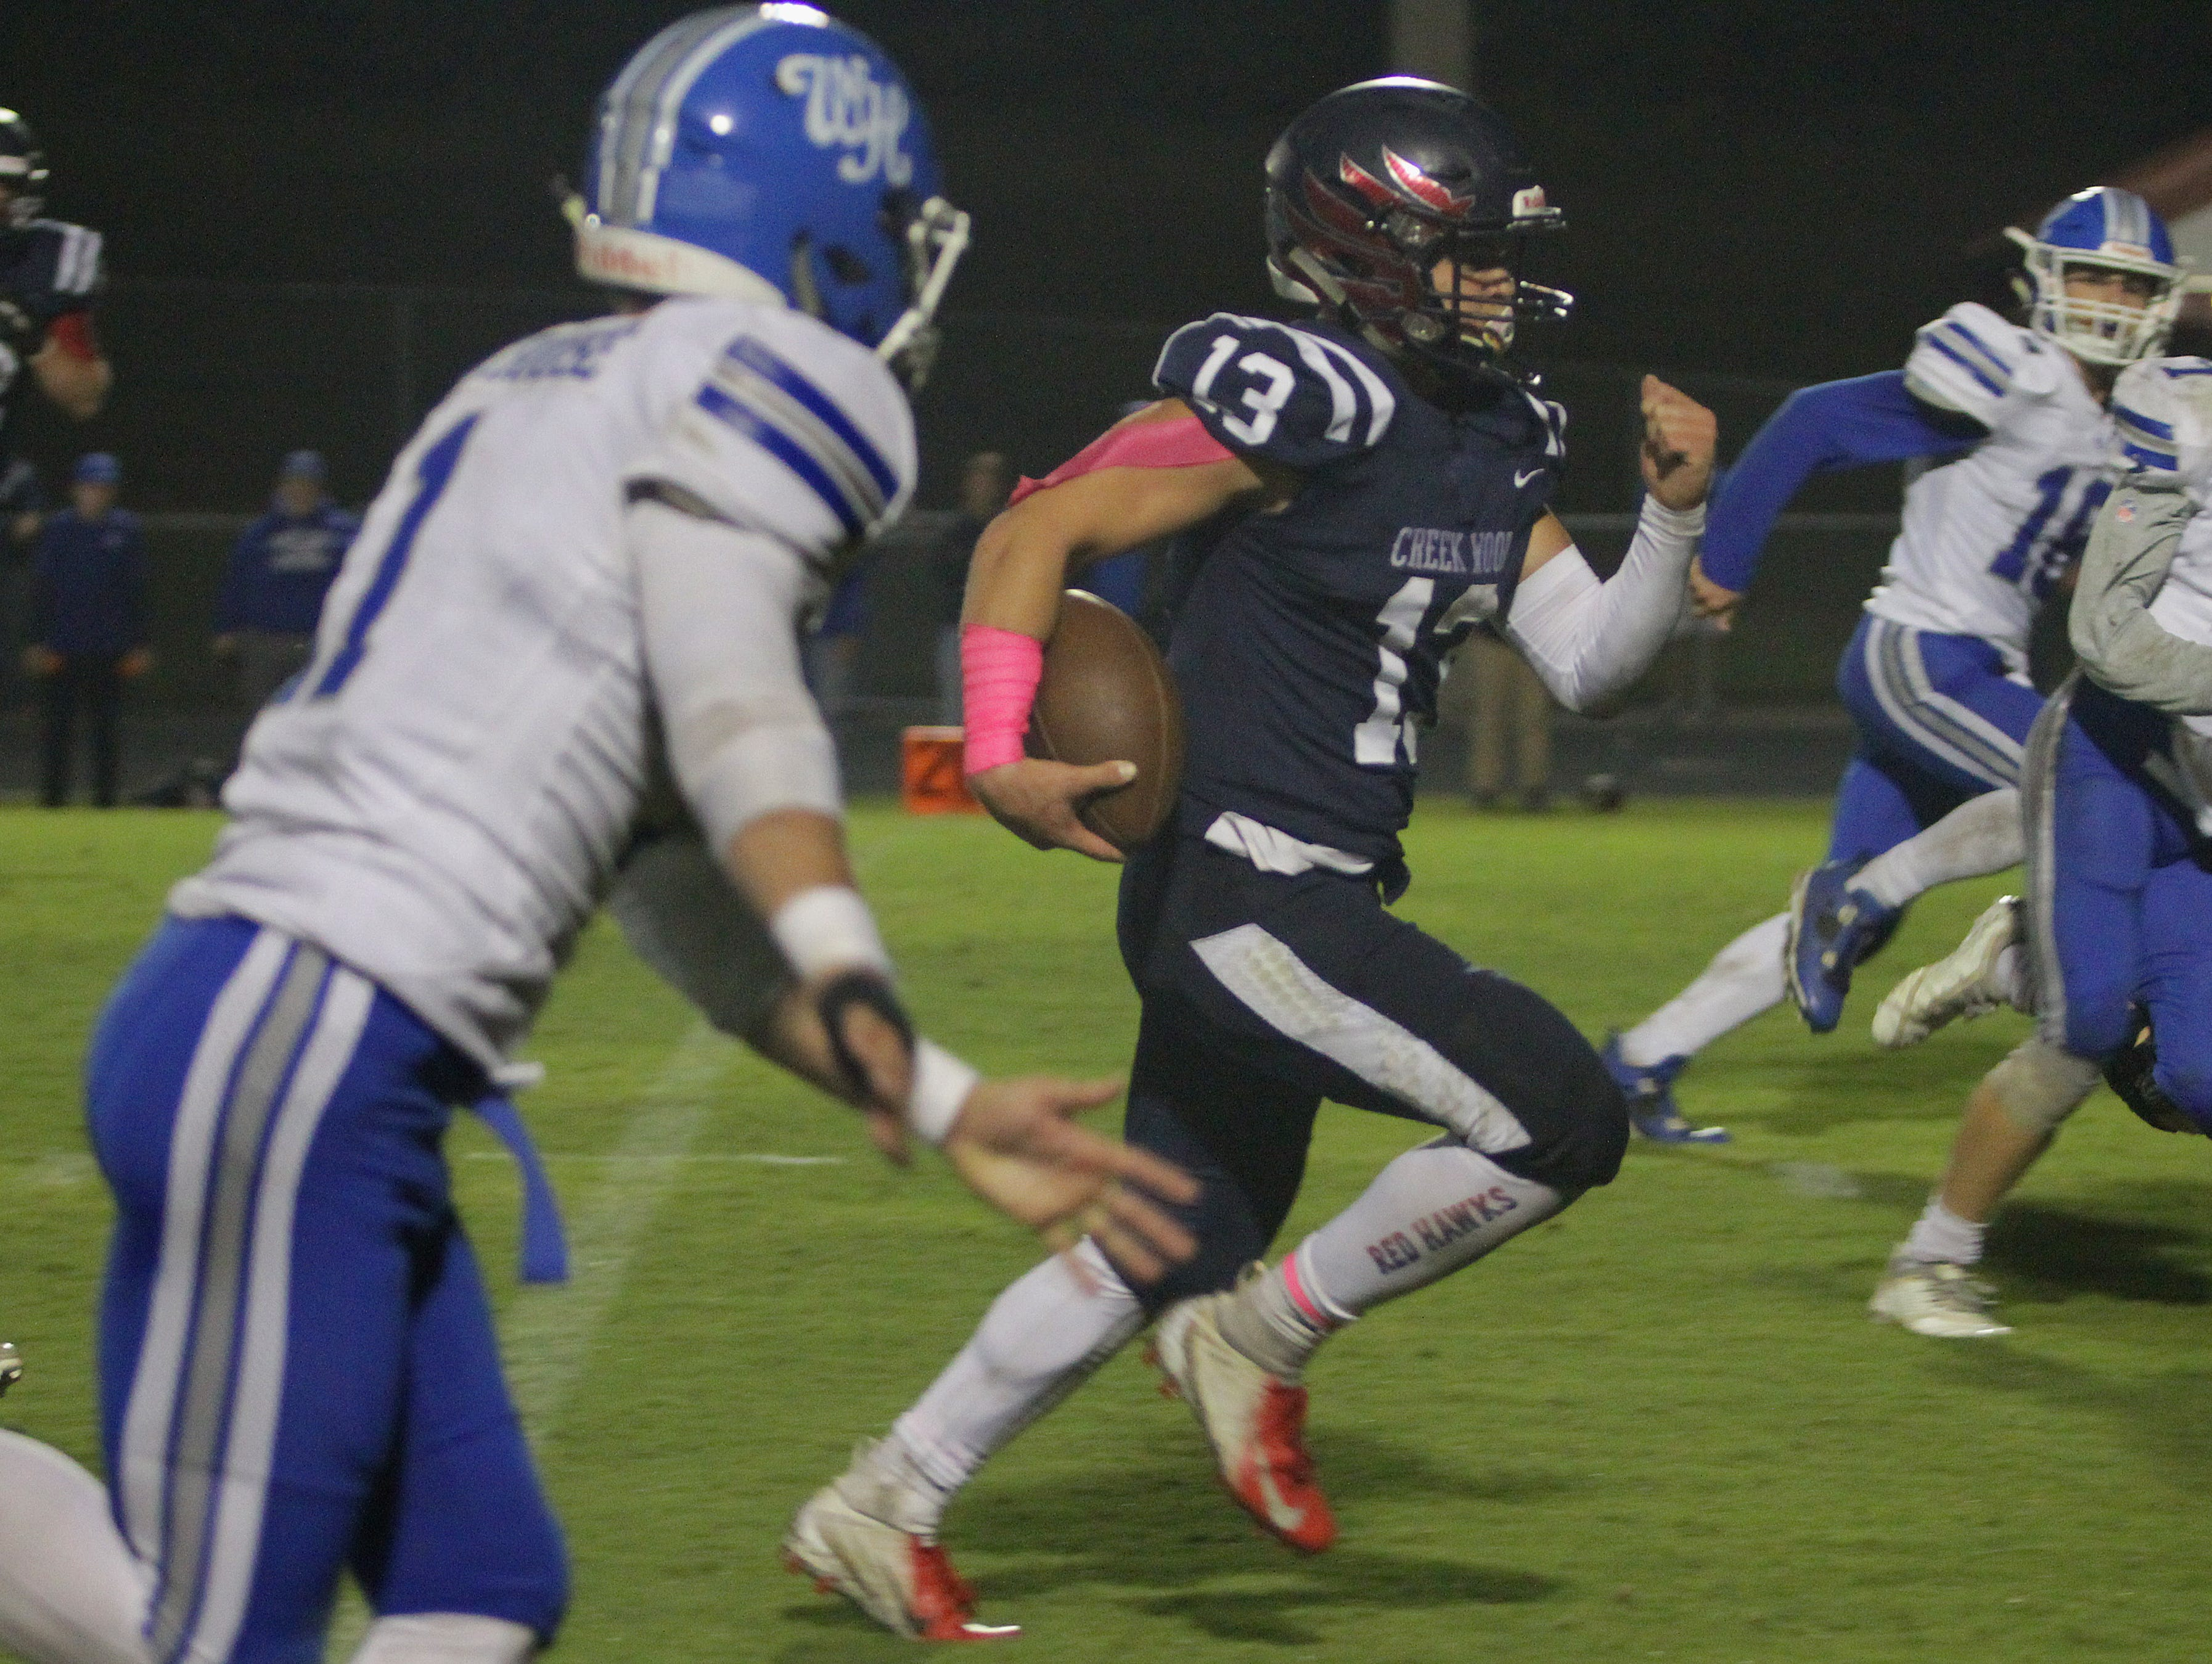 Creek Wood's Sam Askins out runs the White House Defense to score a TD on Friday, October 12, 2018.